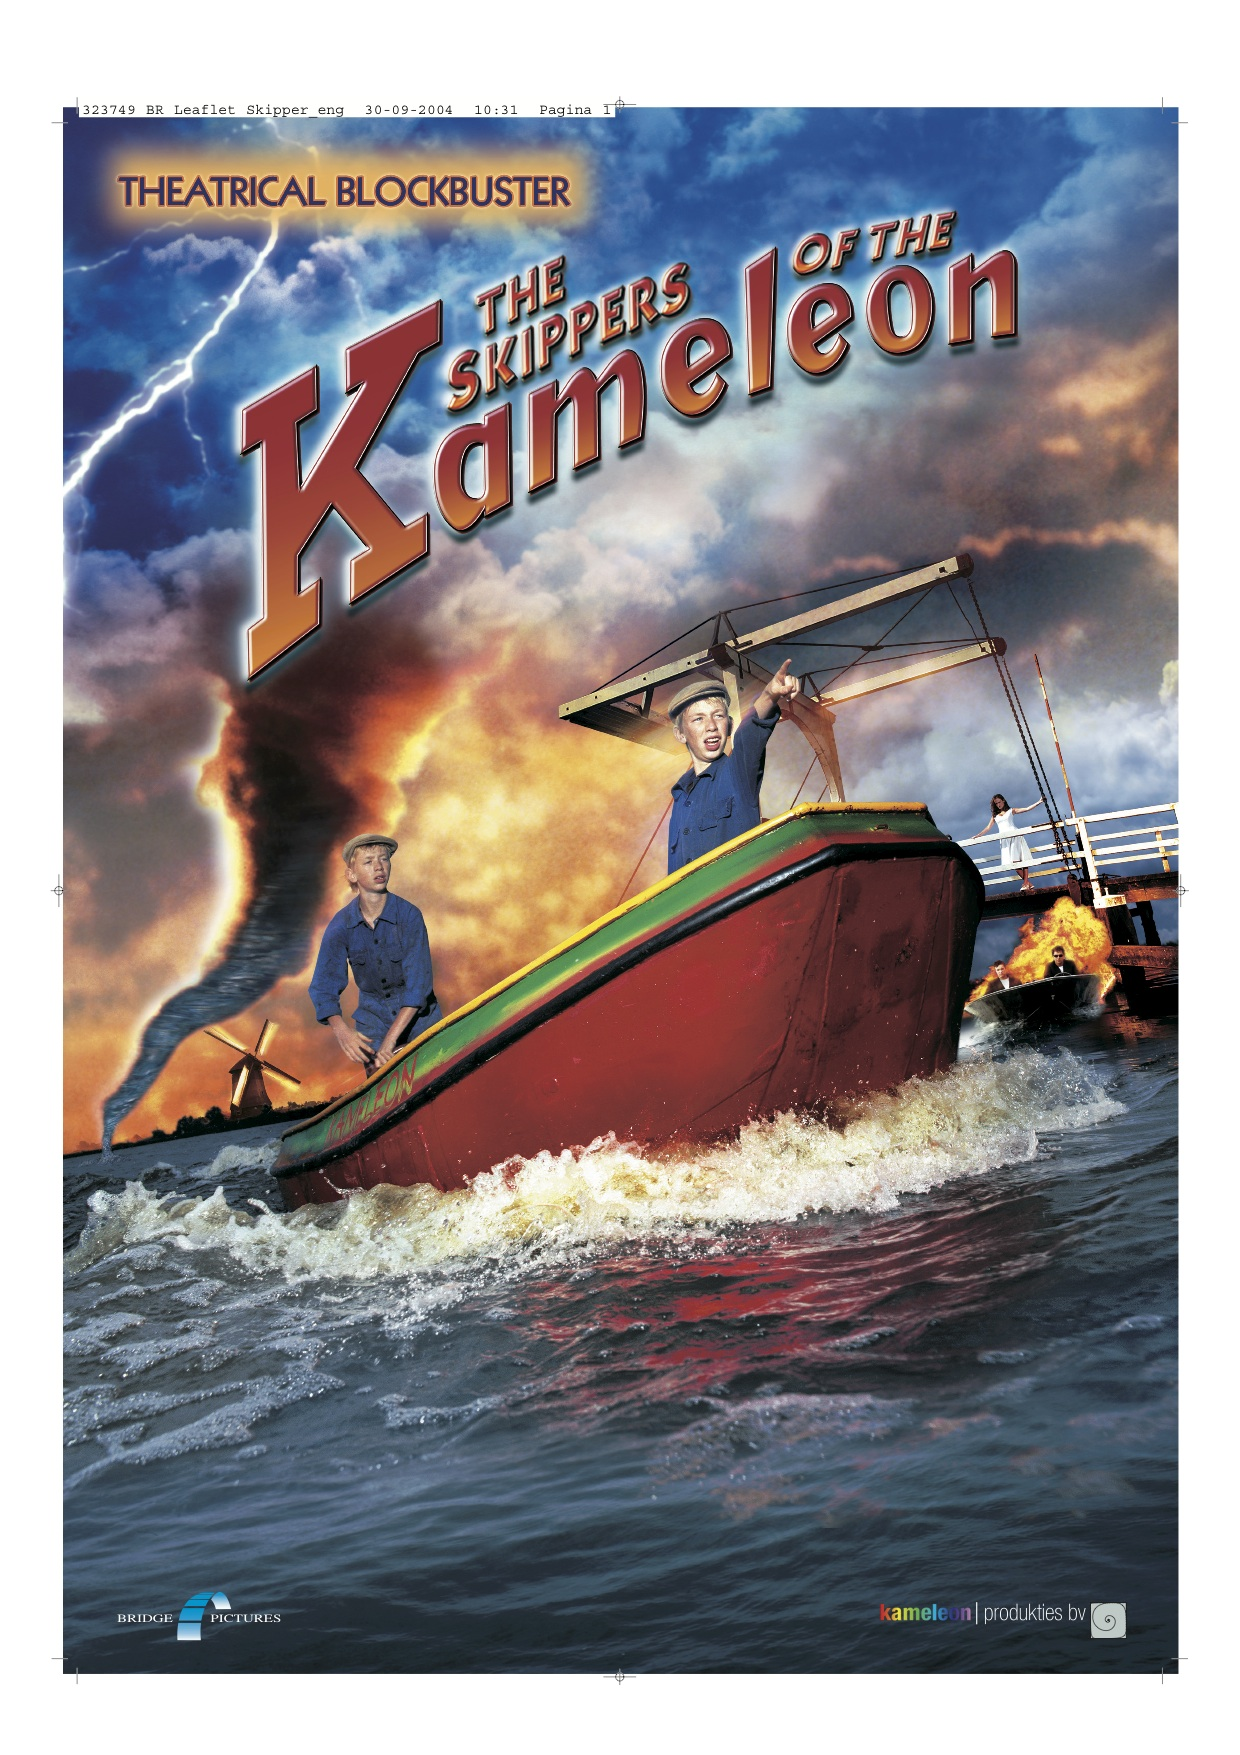 Skippers of the Kameleon